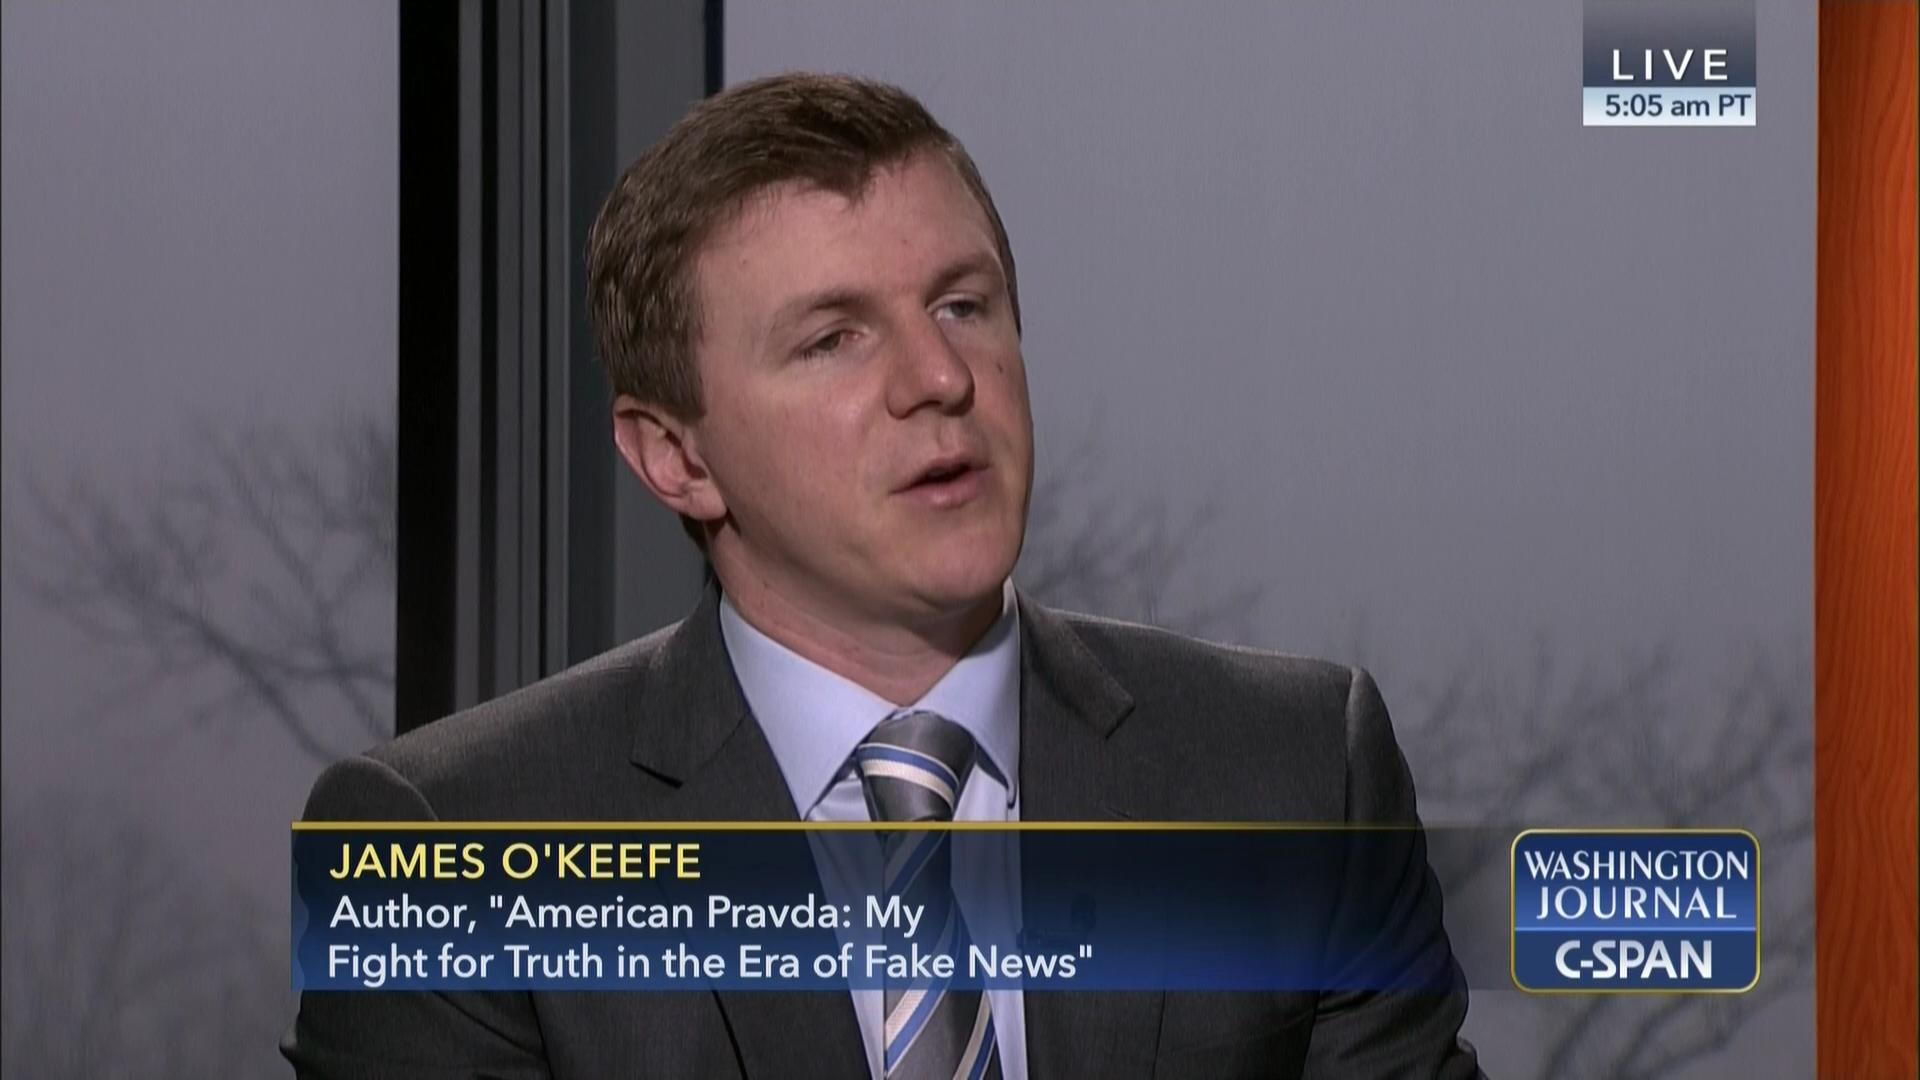 James O'Keefe on the Media | C-SPAN.org